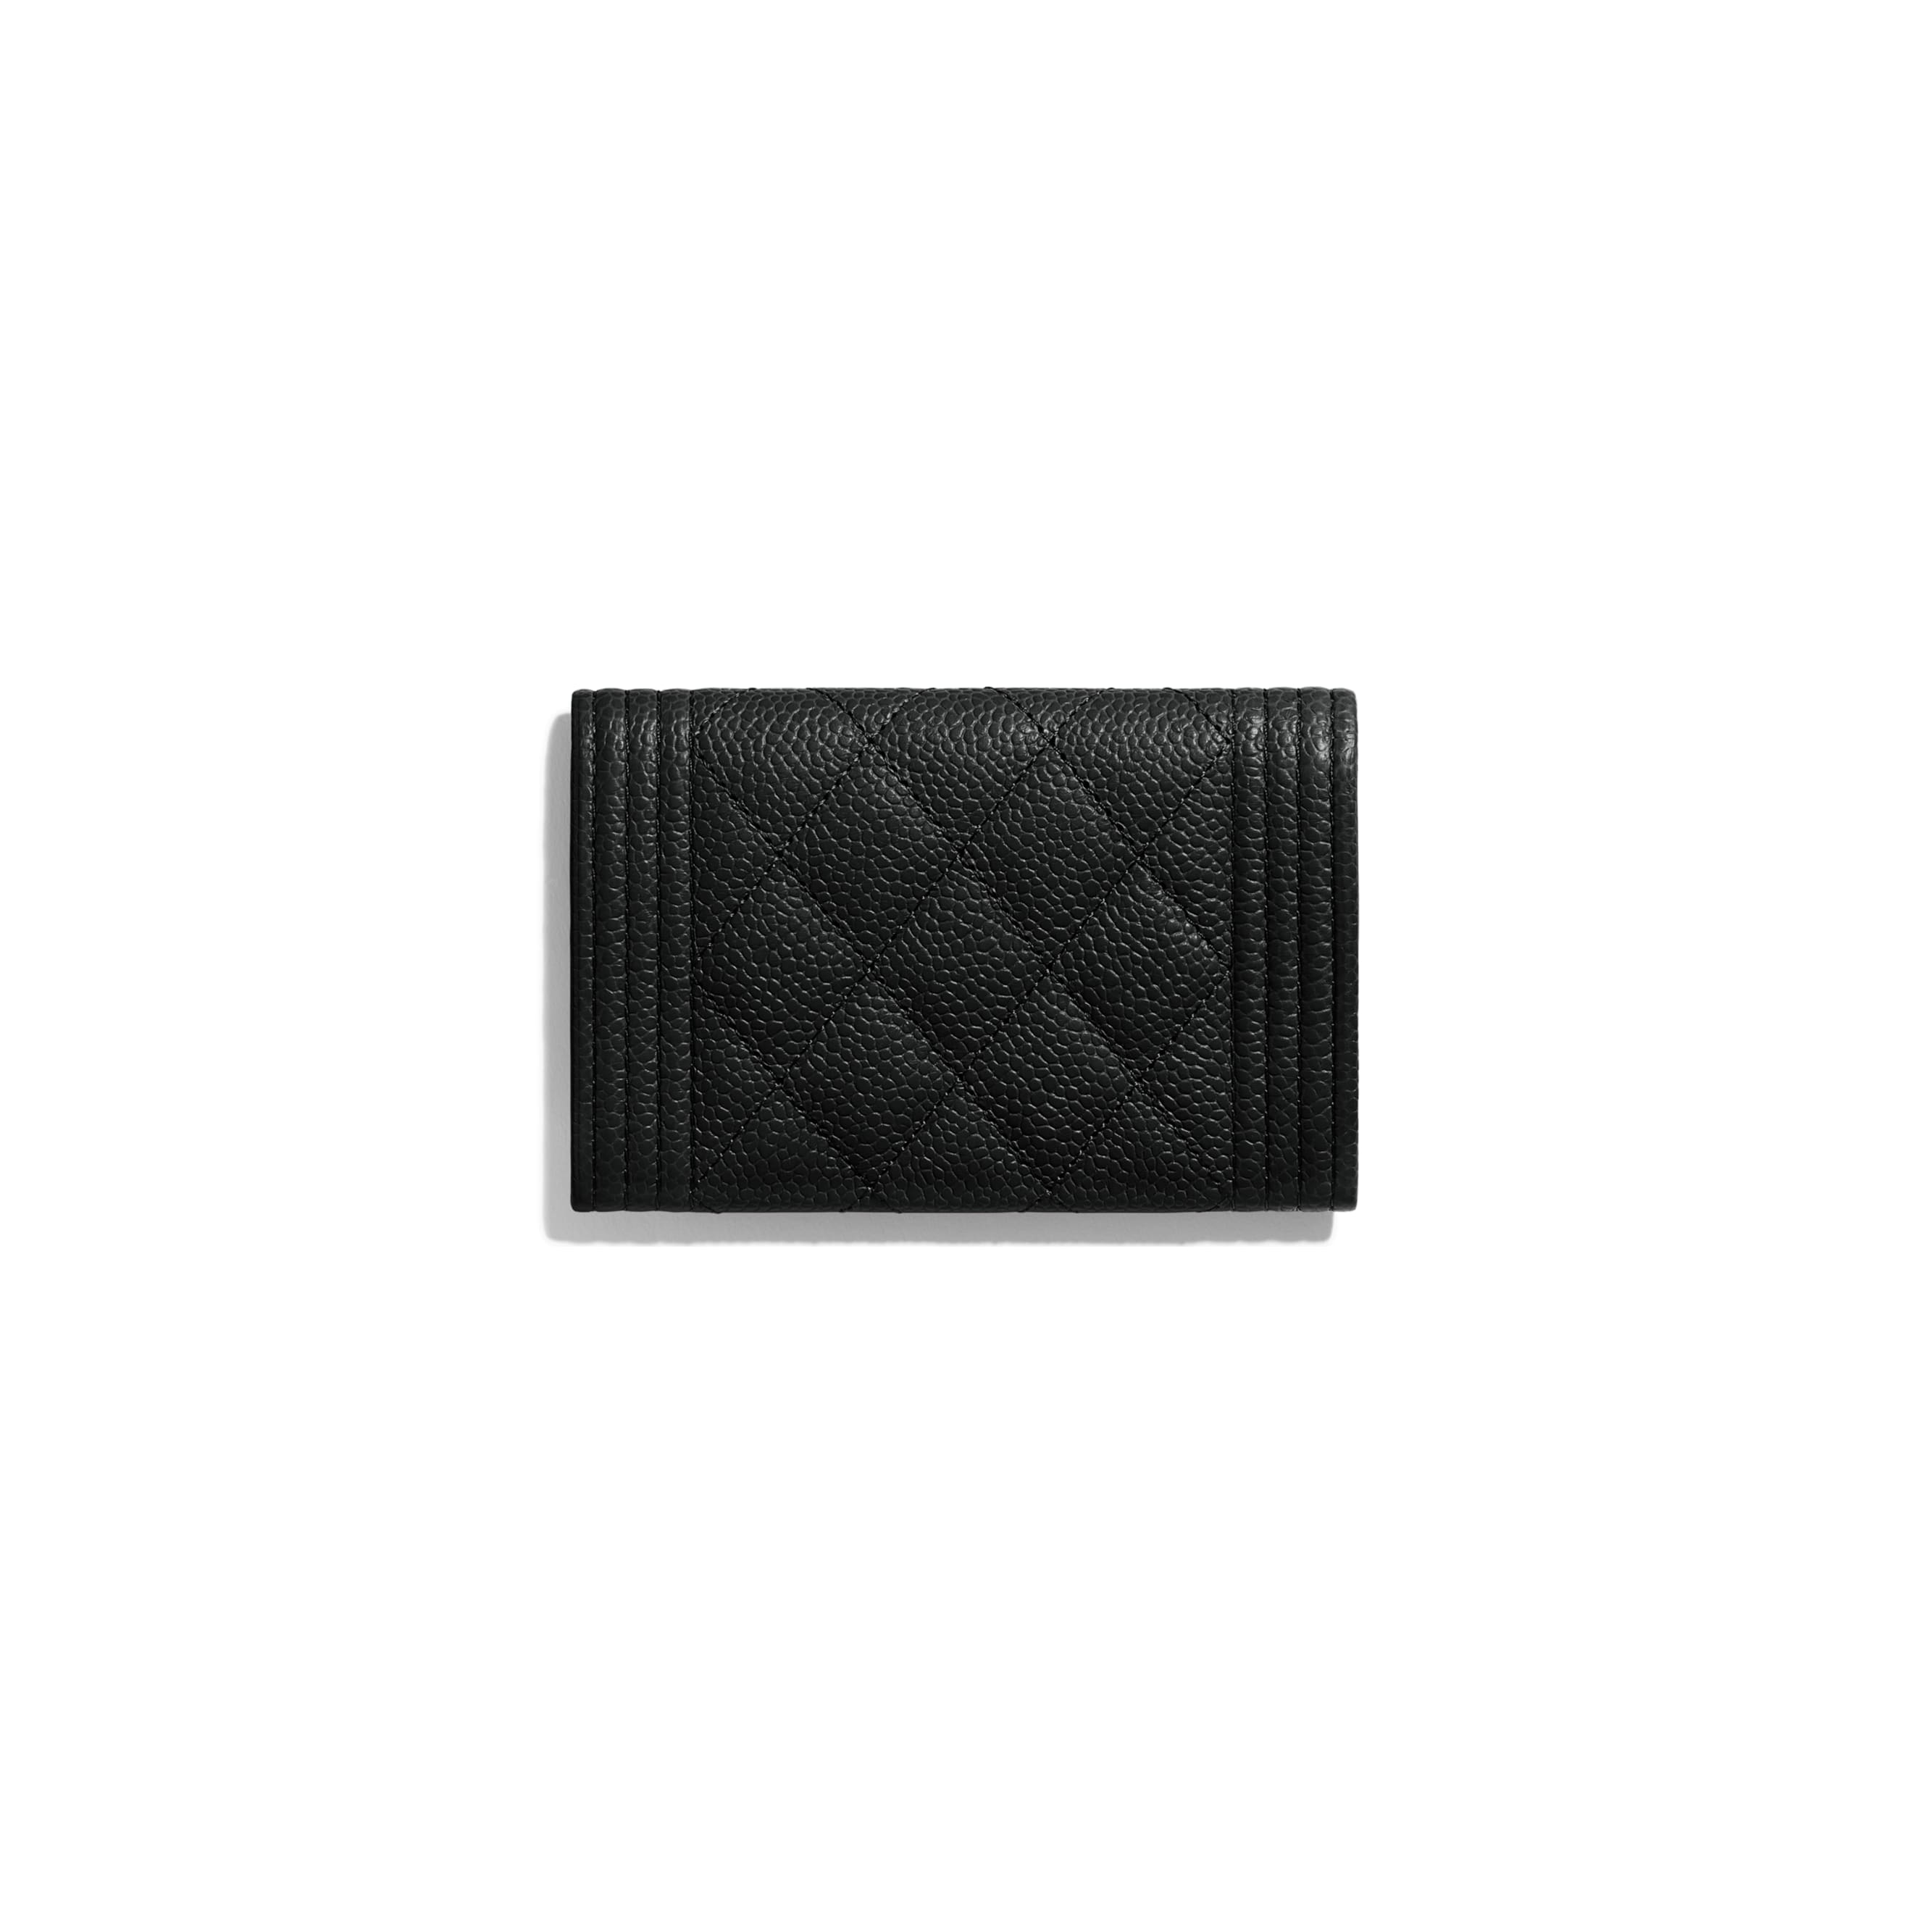 BOY CHANEL Flap Card Holder - Black - Grained Calfskin & Gold-Tone Metal - CHANEL - Alternative view - see standard sized version